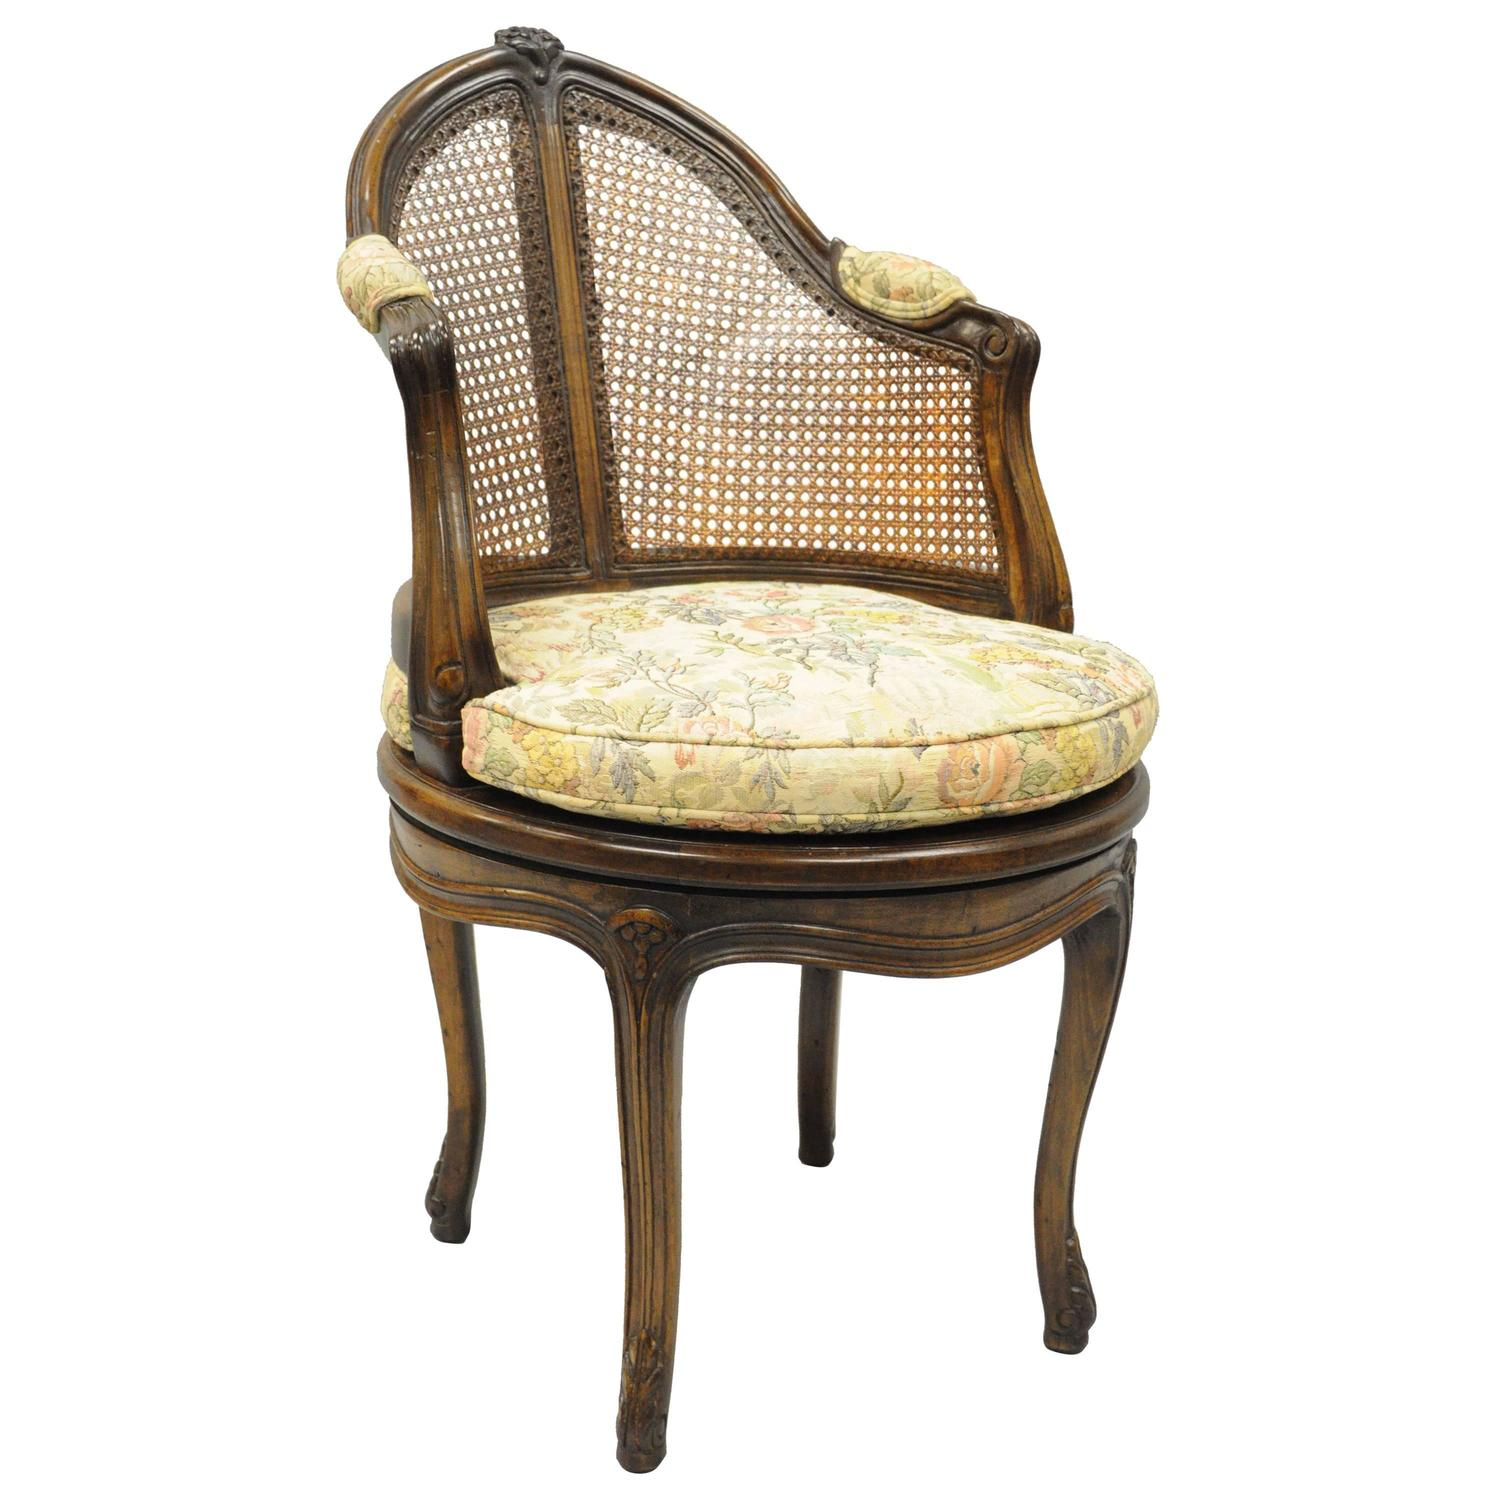 19th Century Painted French Country Style Cane Back Chair at 1stdibs